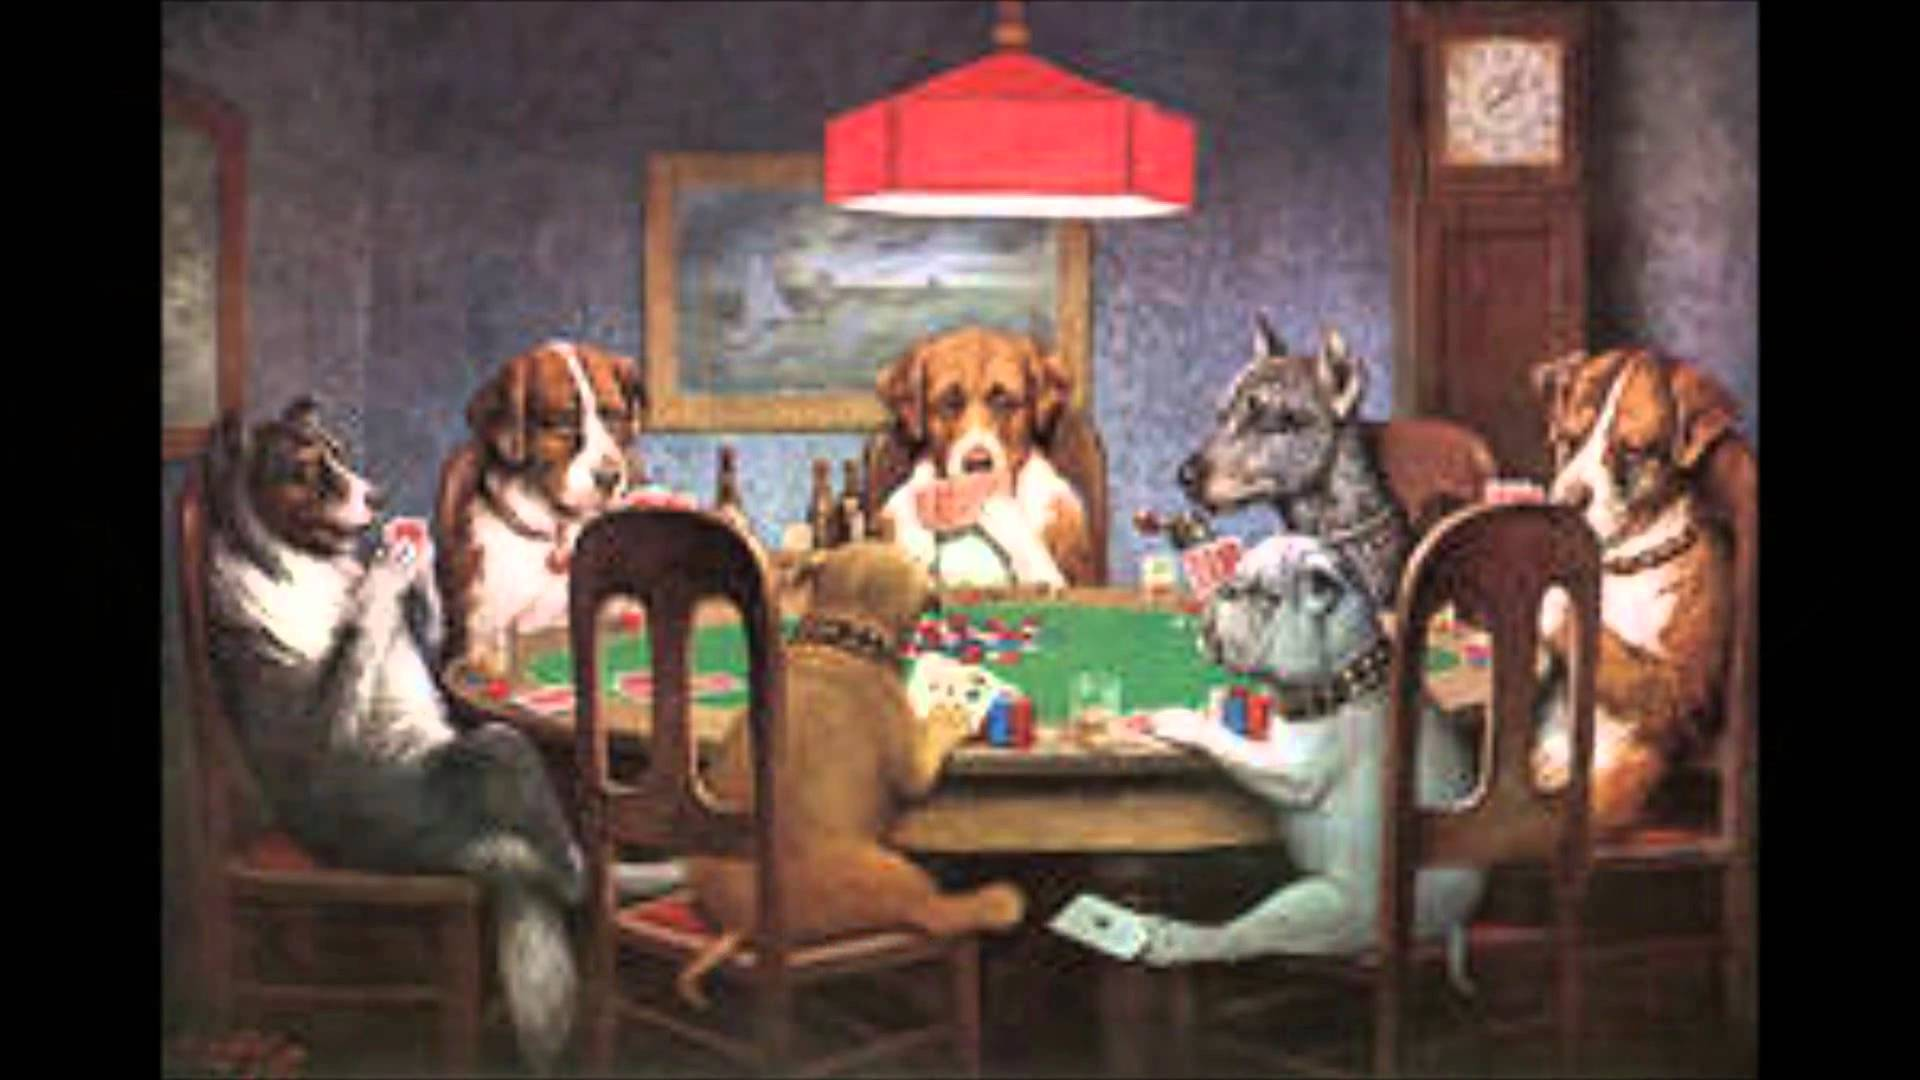 Picture Of Michael Vick Playing Poker With Dogs